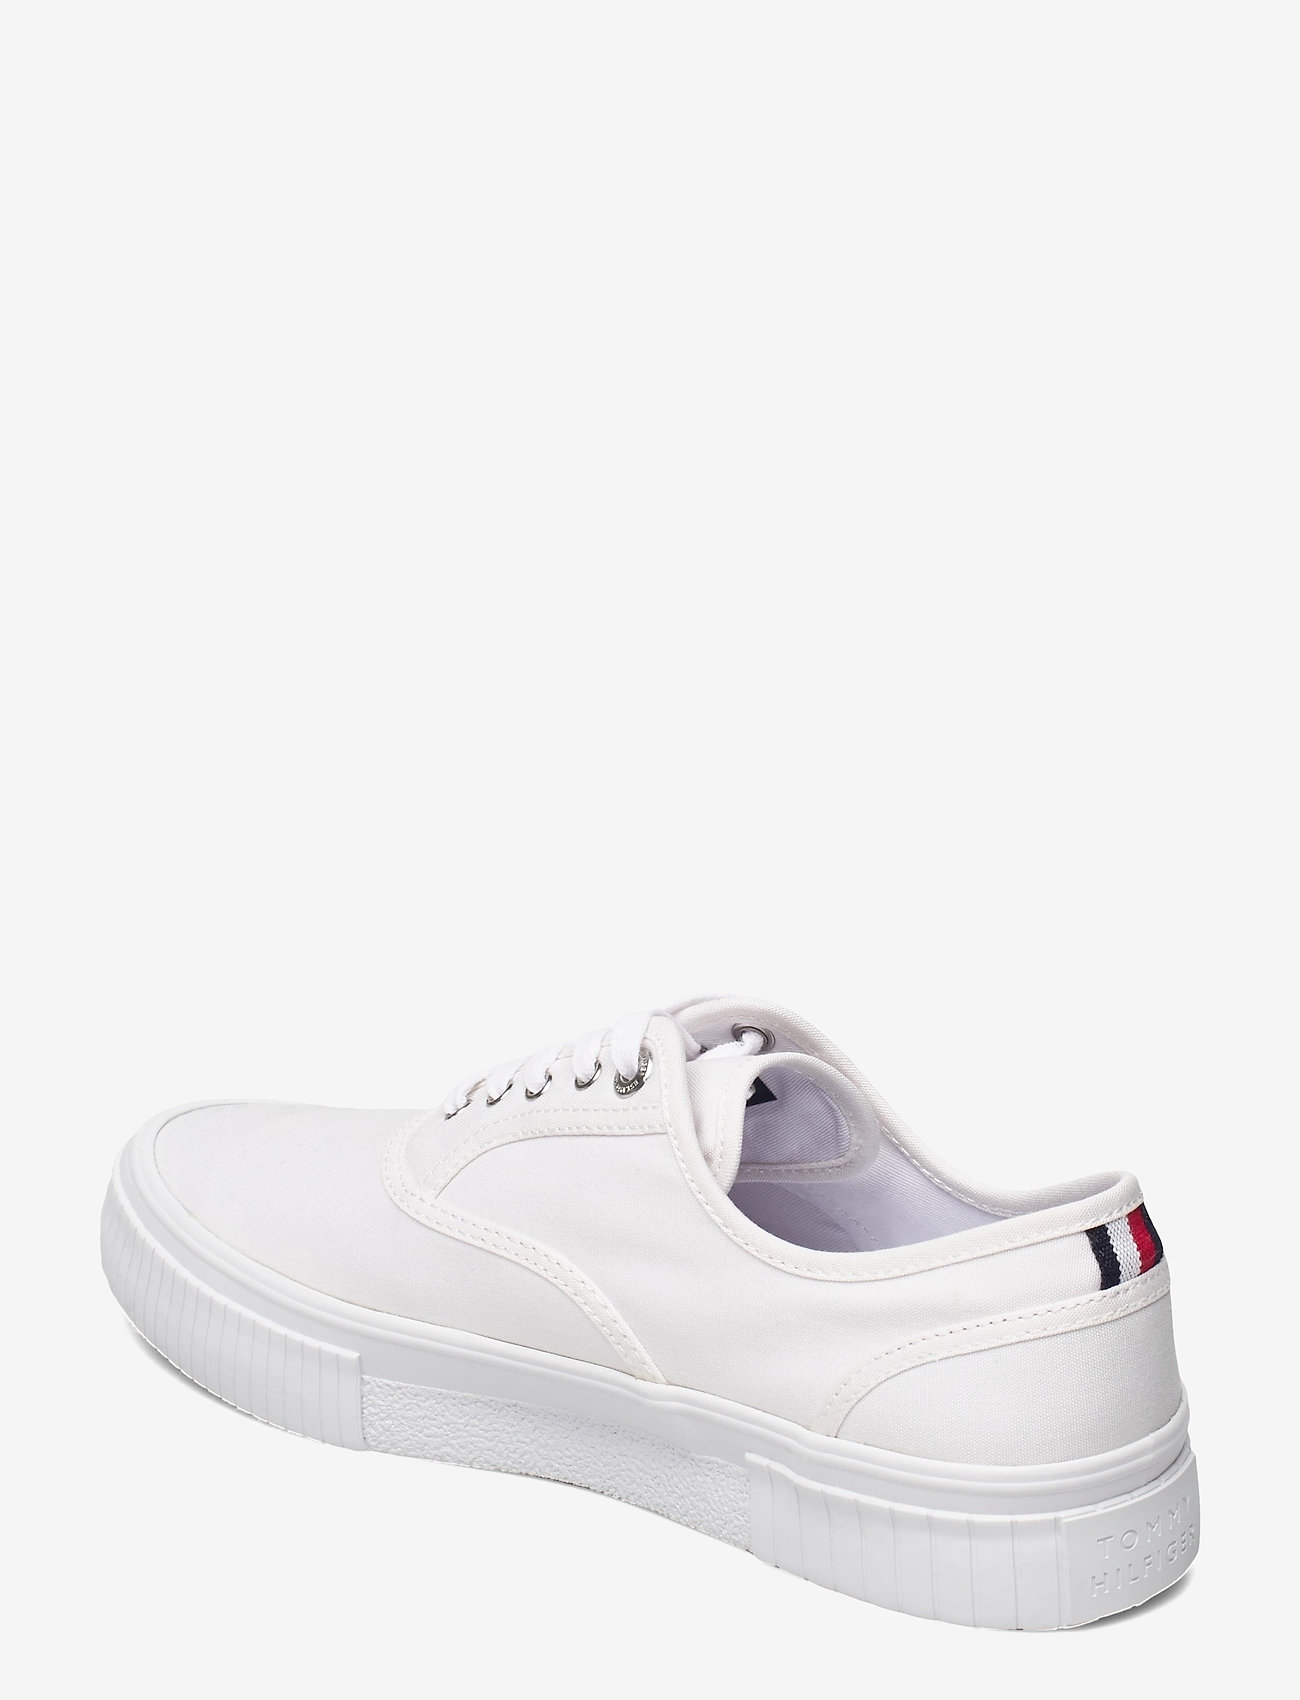 Tommy Hilfiger - ELEVATED SEASONAL VULC TEXTILE - laag sneakers - white - 2